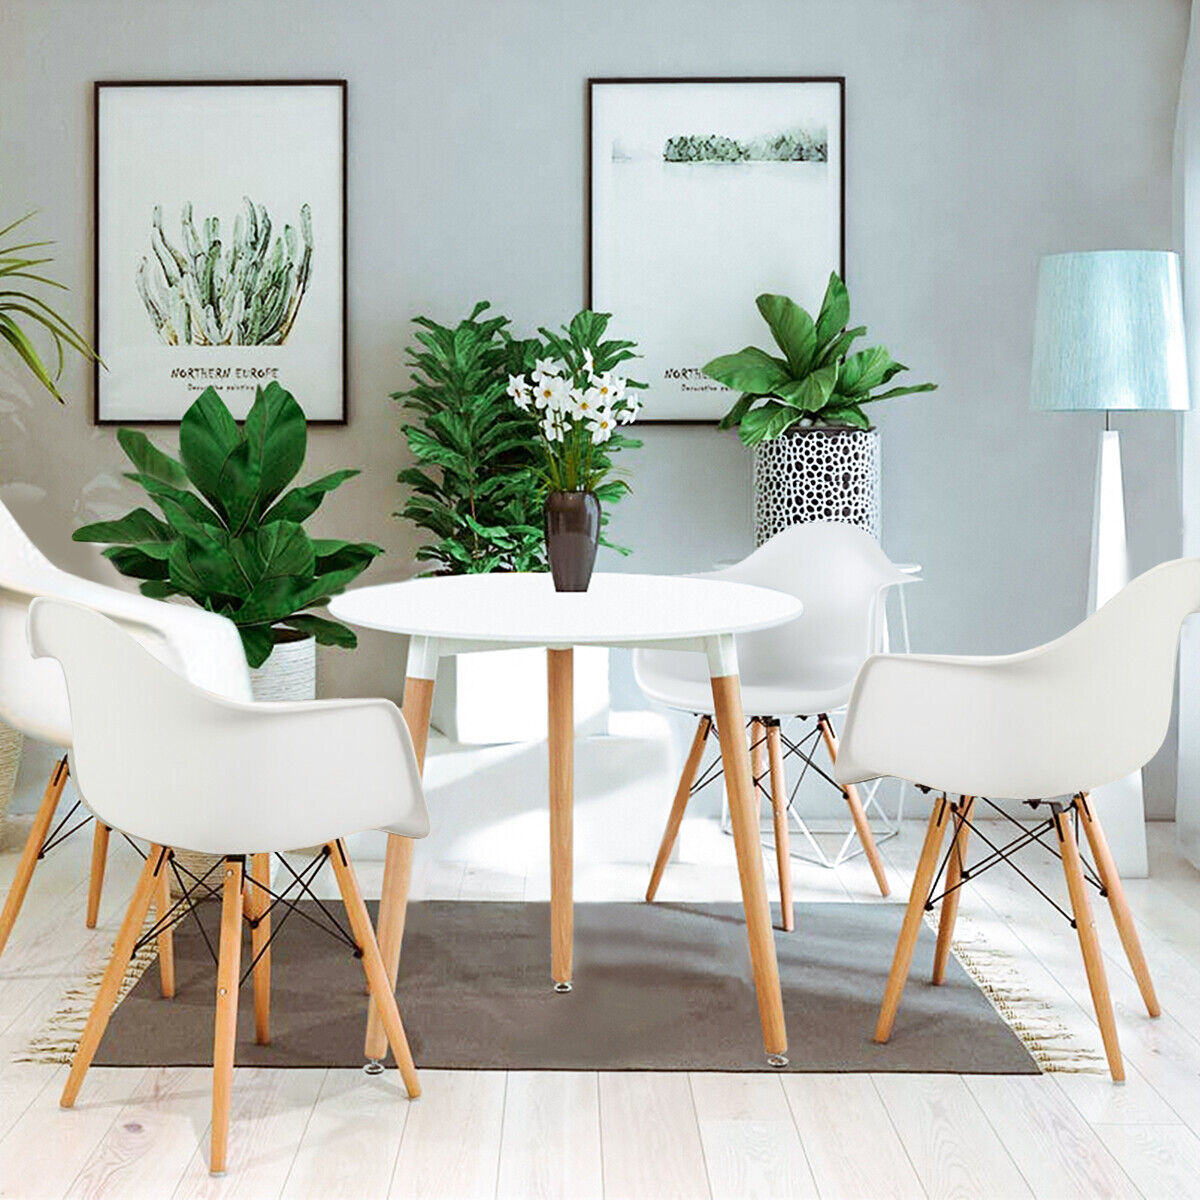 4 White Dining Chairs And Round Table